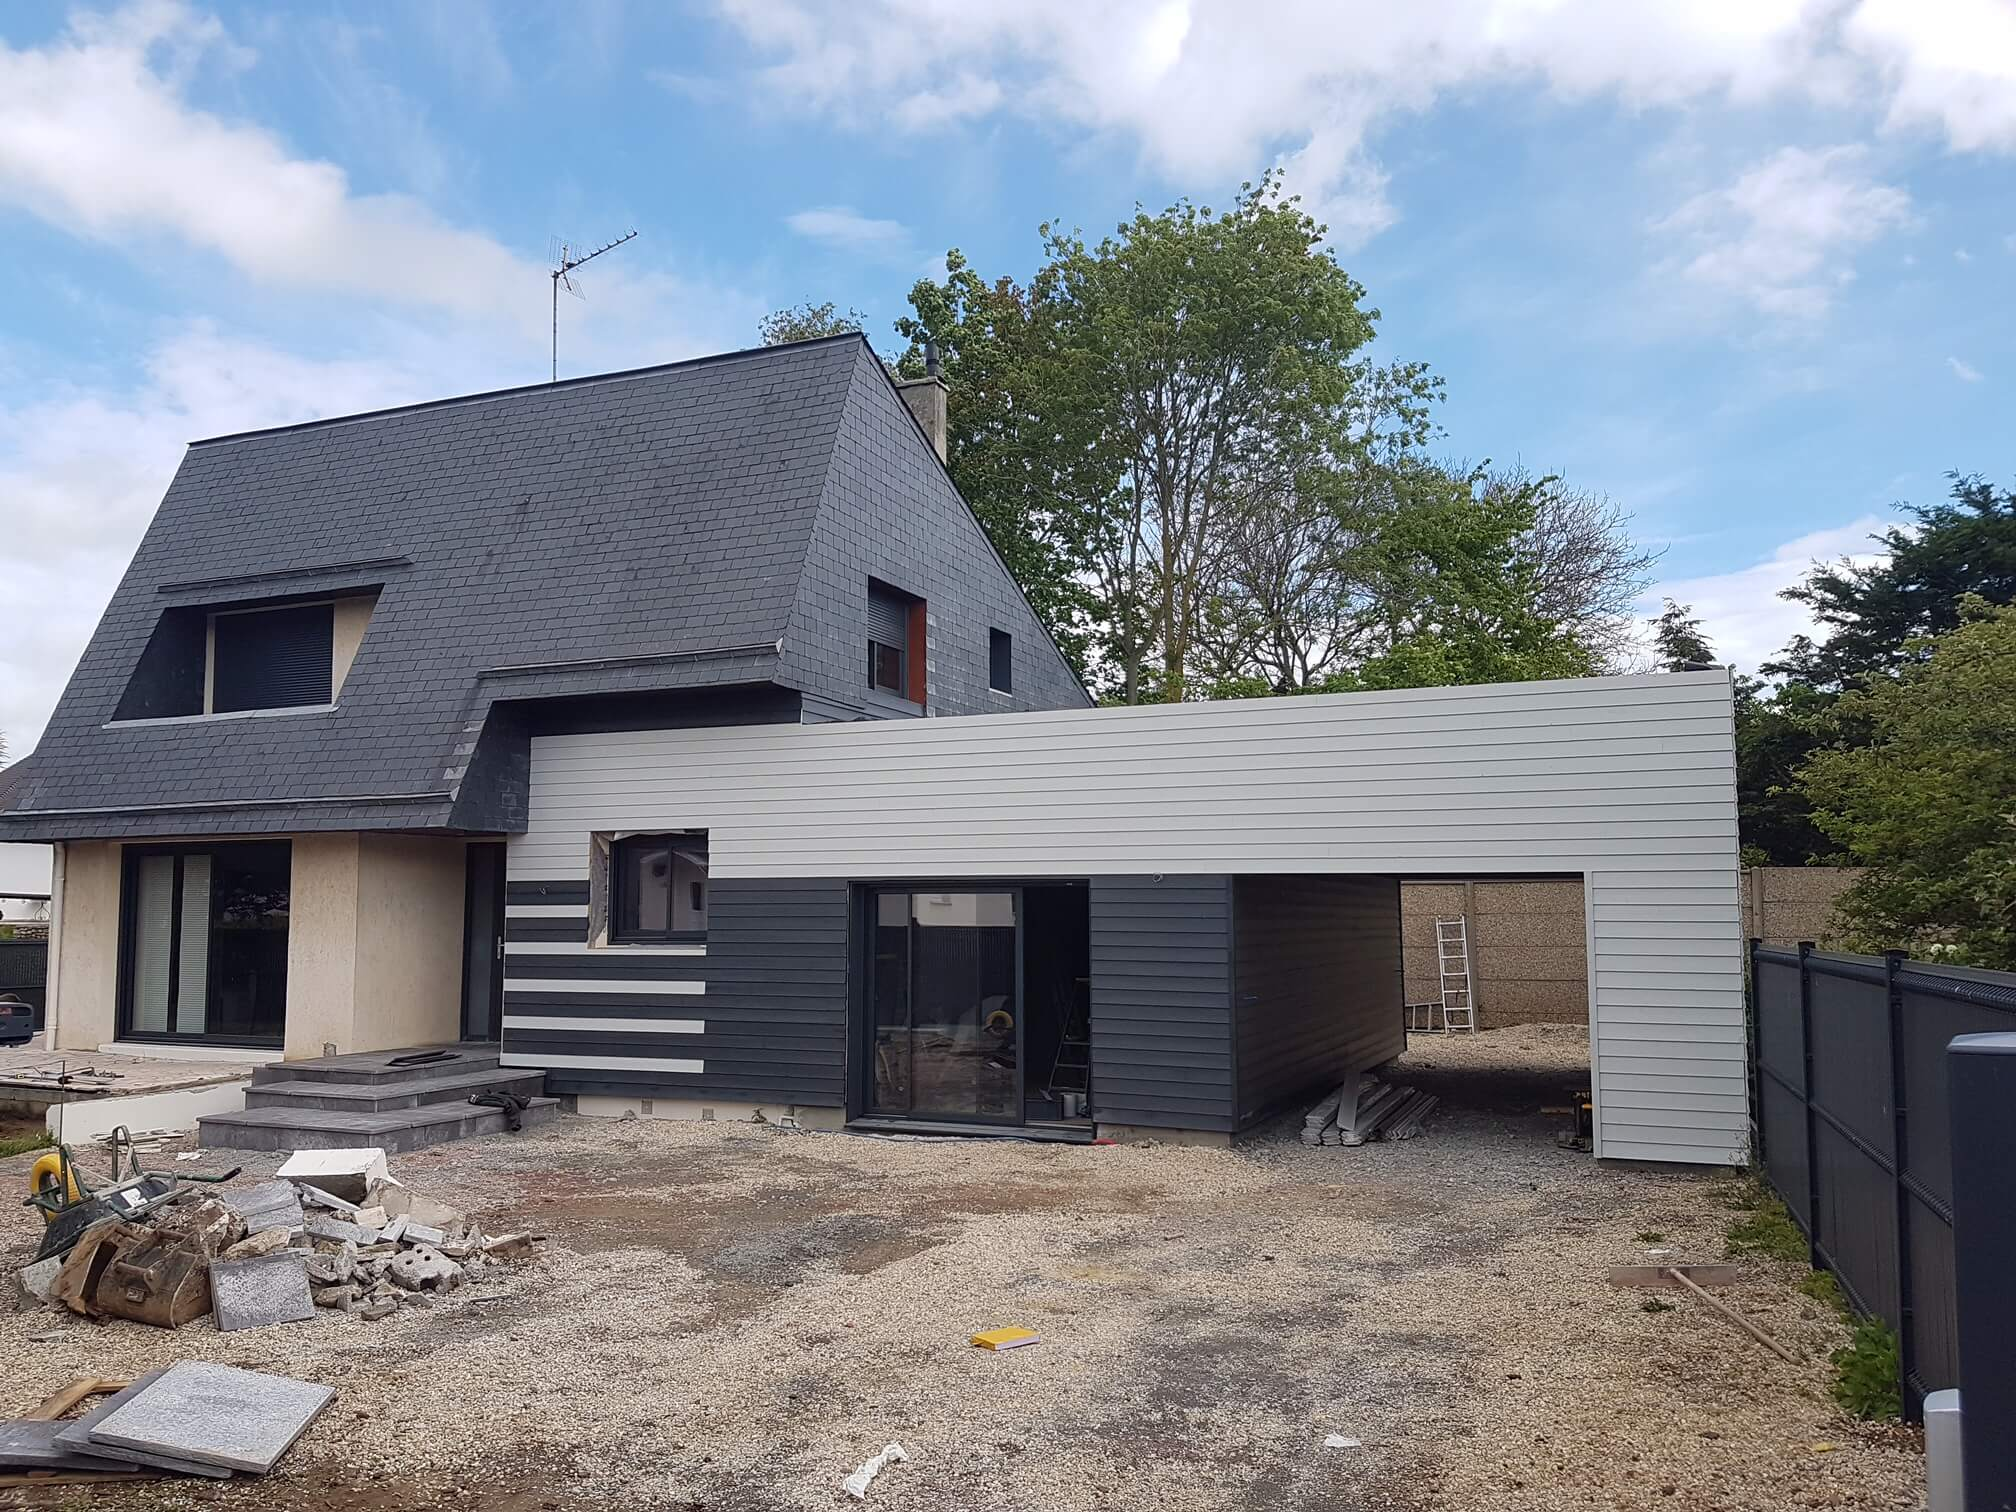 Ossature bois upstructures caen for Extension de maison